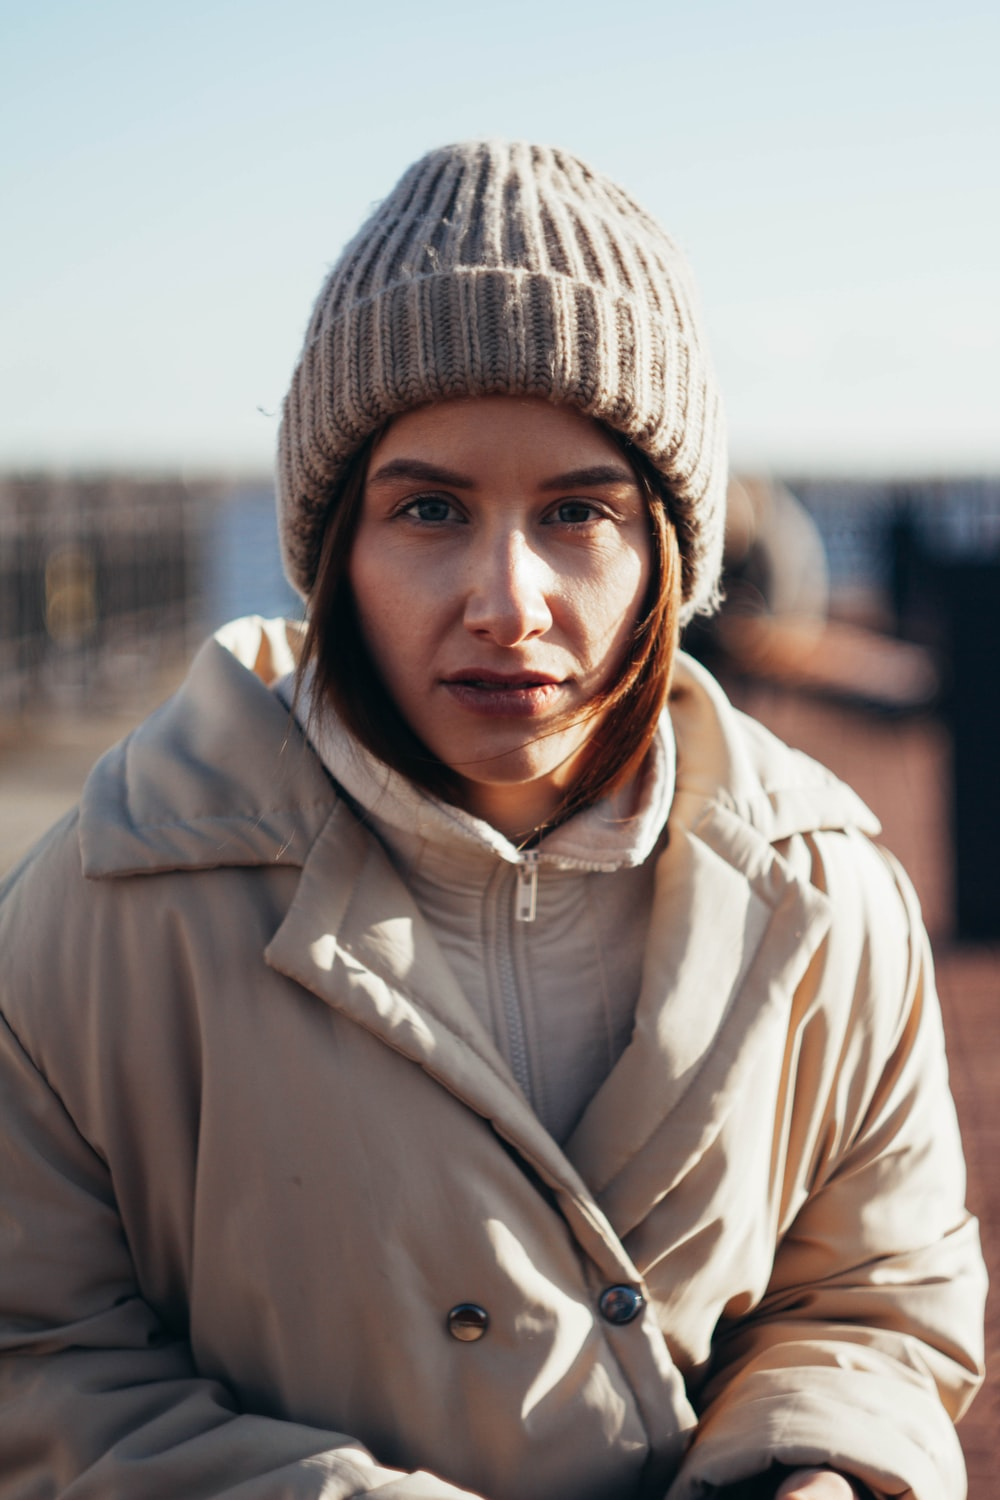 woman in gray knit cap and white zip up jacket